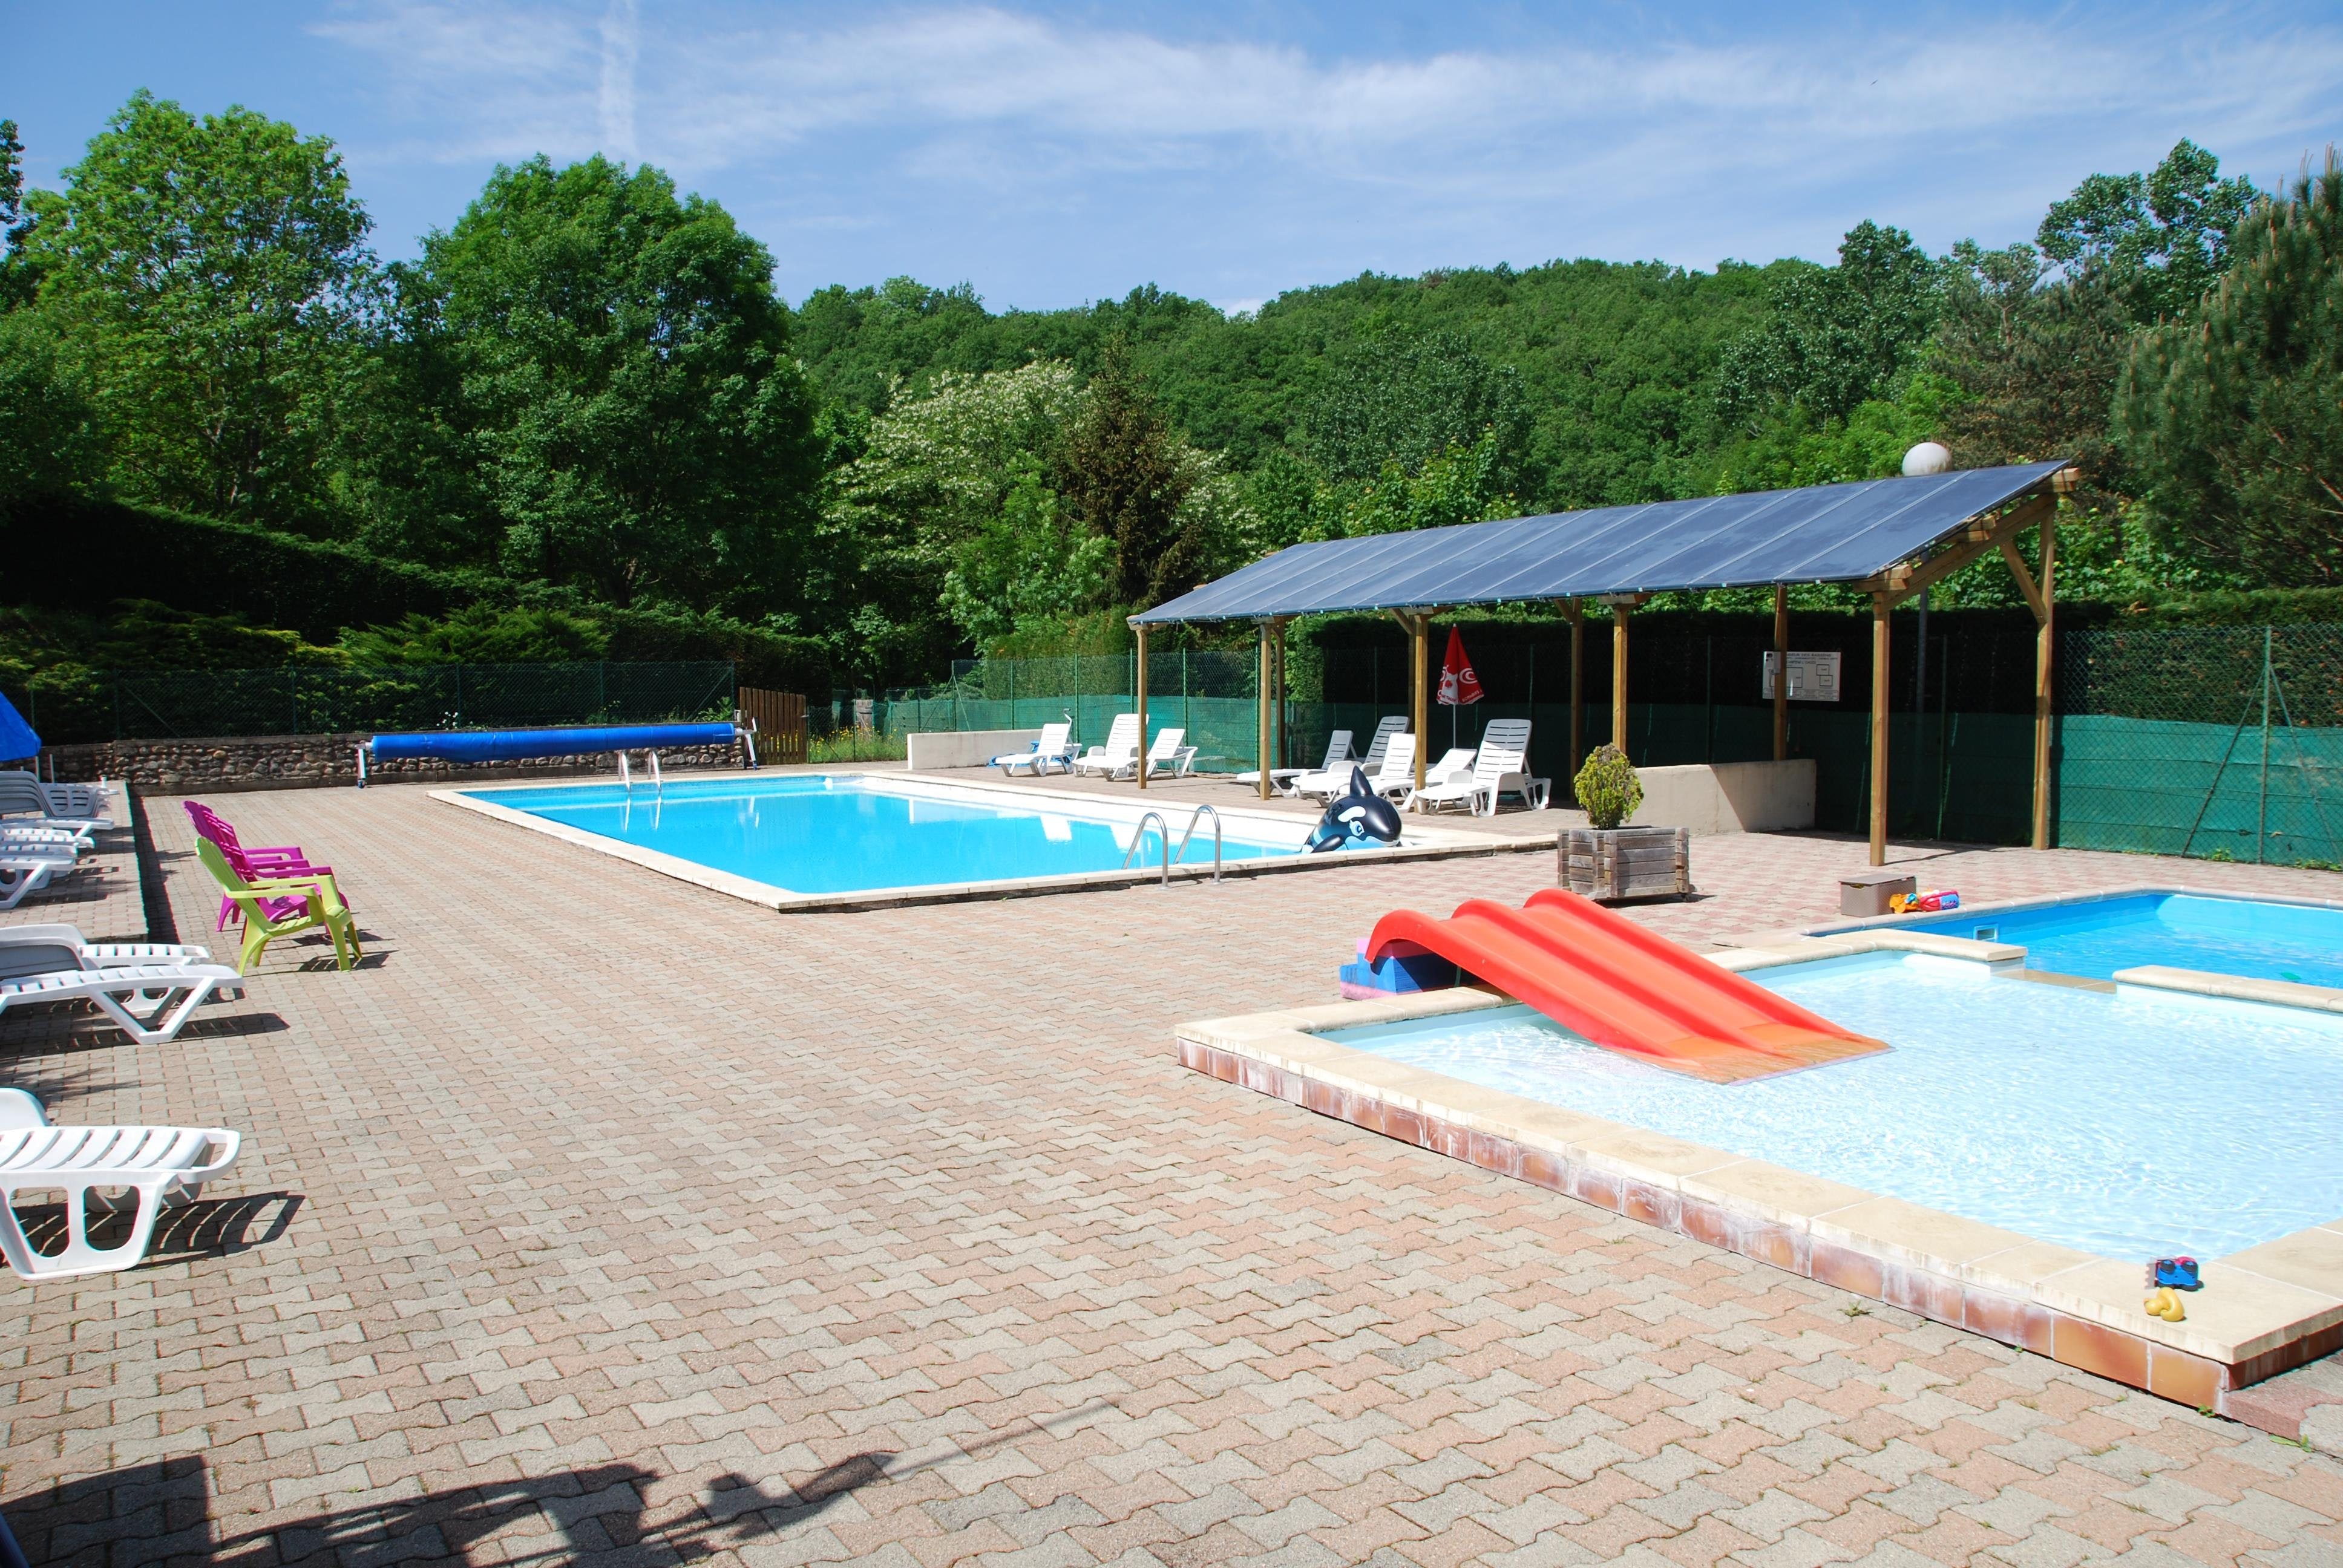 Camping L'Oasis zwembad 3 Oberbronn